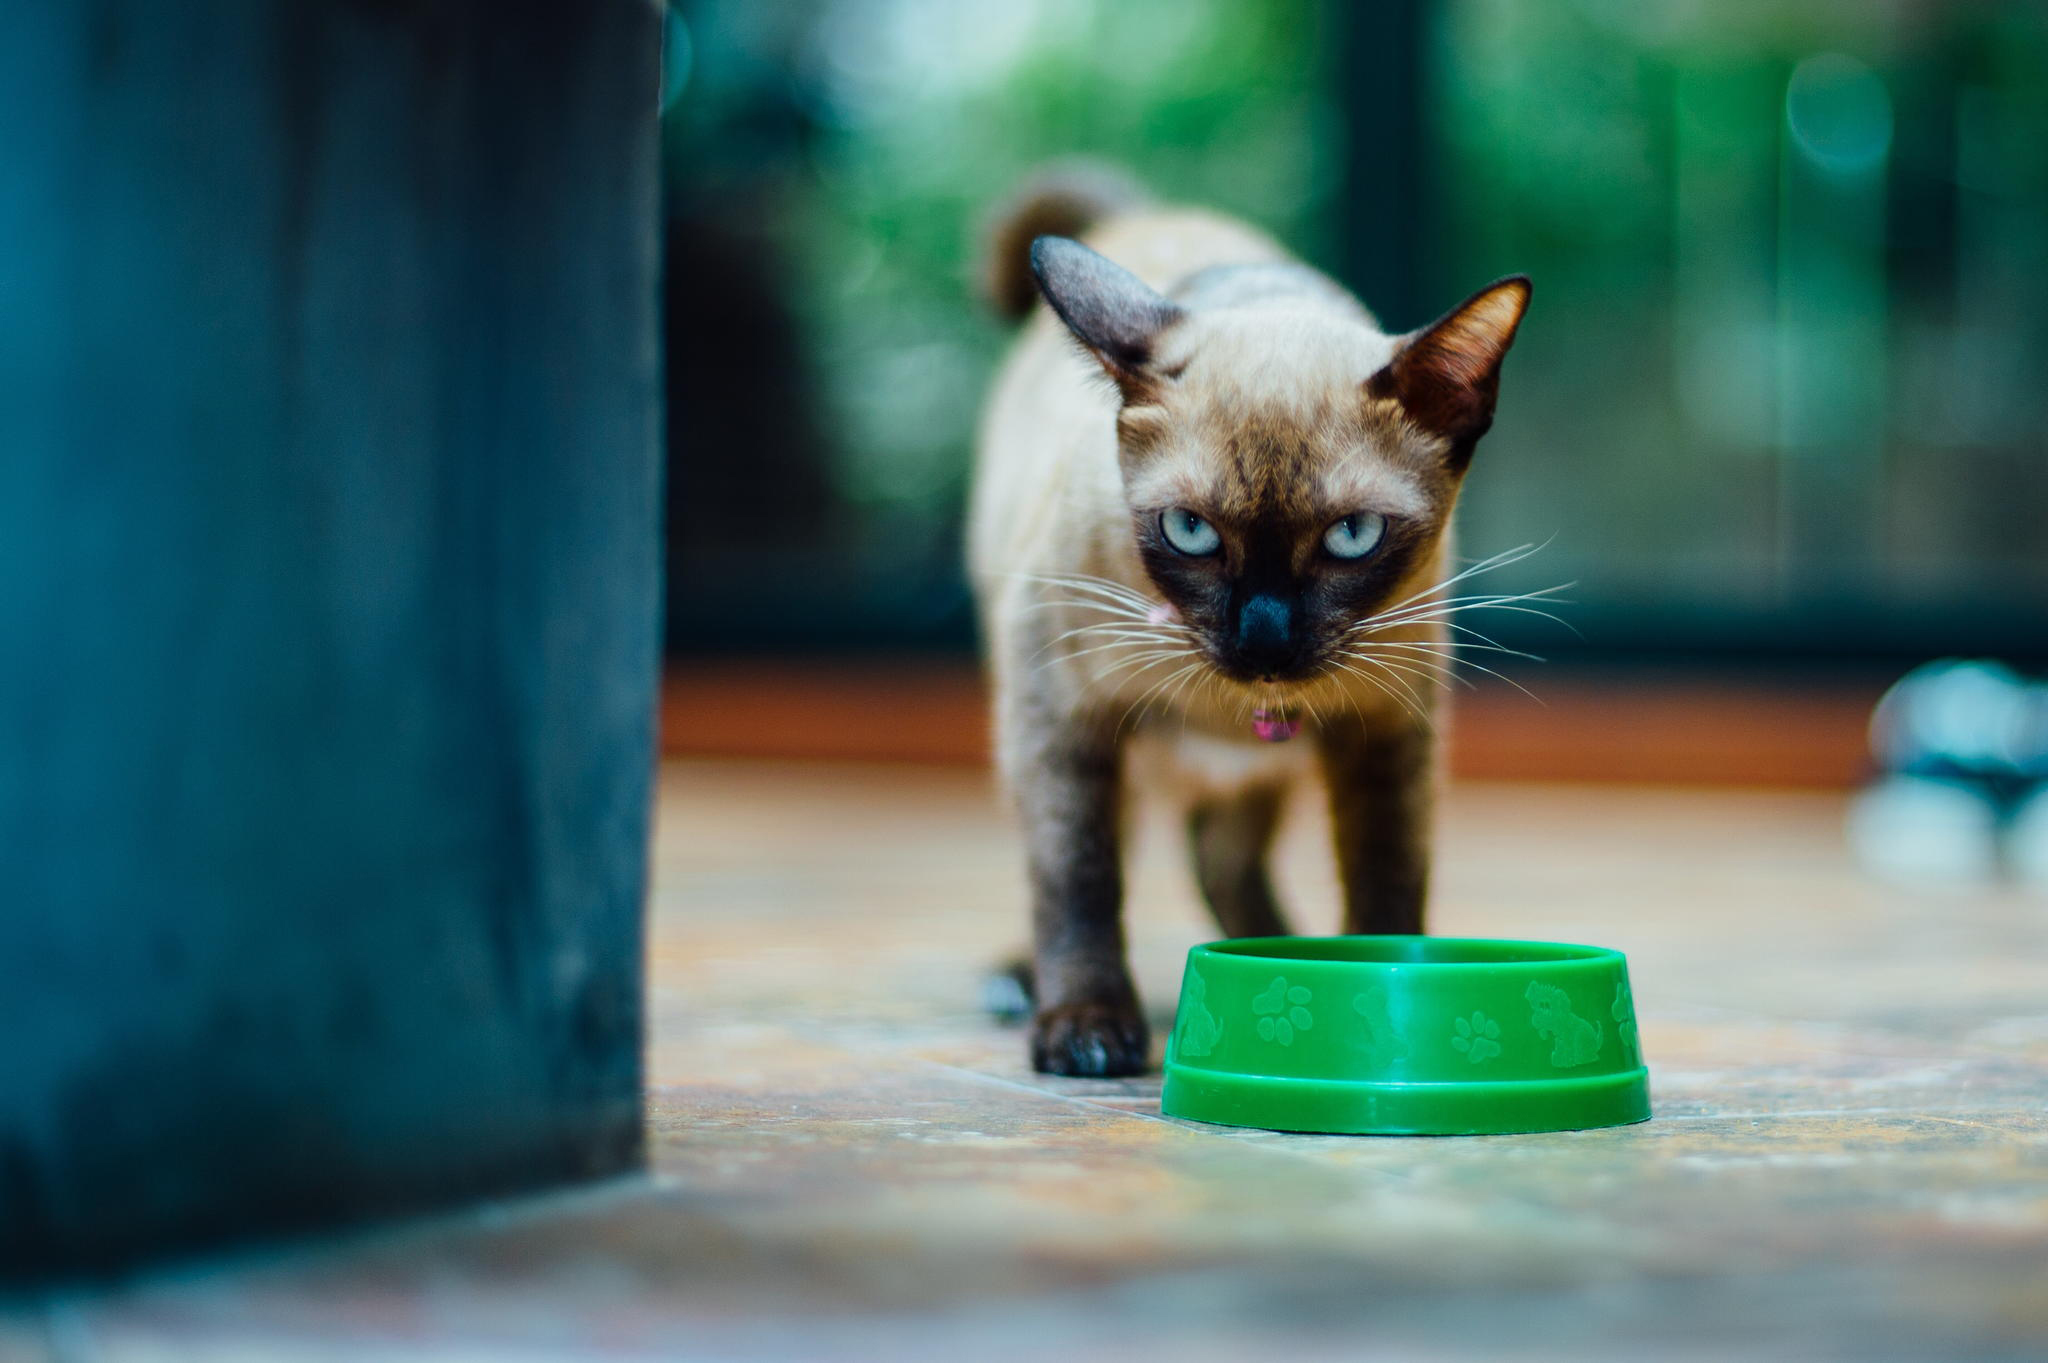 116110 download wallpaper Animals, Kitty, Kitten, Siamese, Sight, Opinion, Bowl screensavers and pictures for free